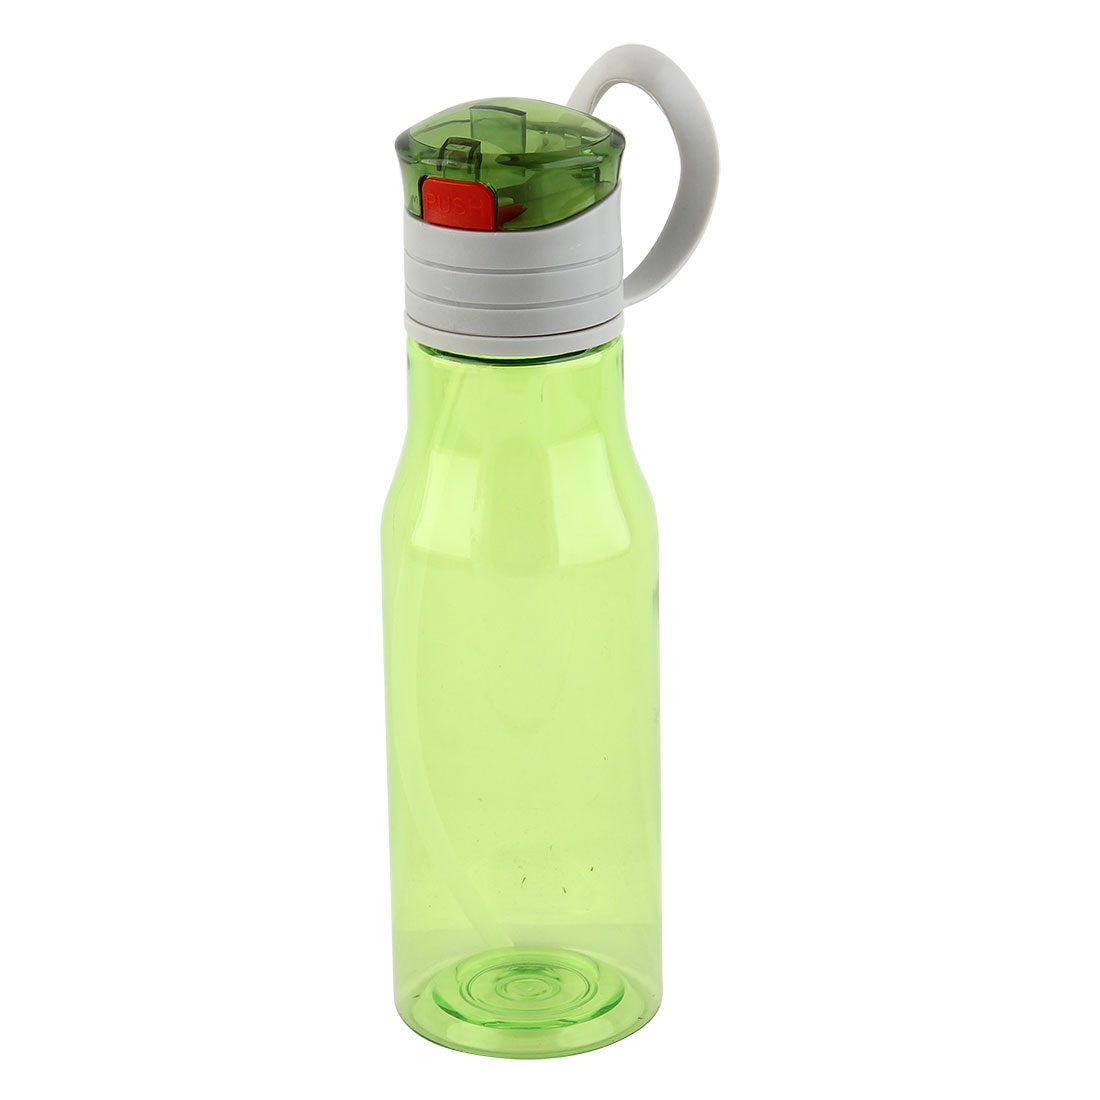 Outdoor Sports Plastic Straw Water Bottle Portable Fruit Juice Mug Cycling Canteen Camping Kettle Green 410ml